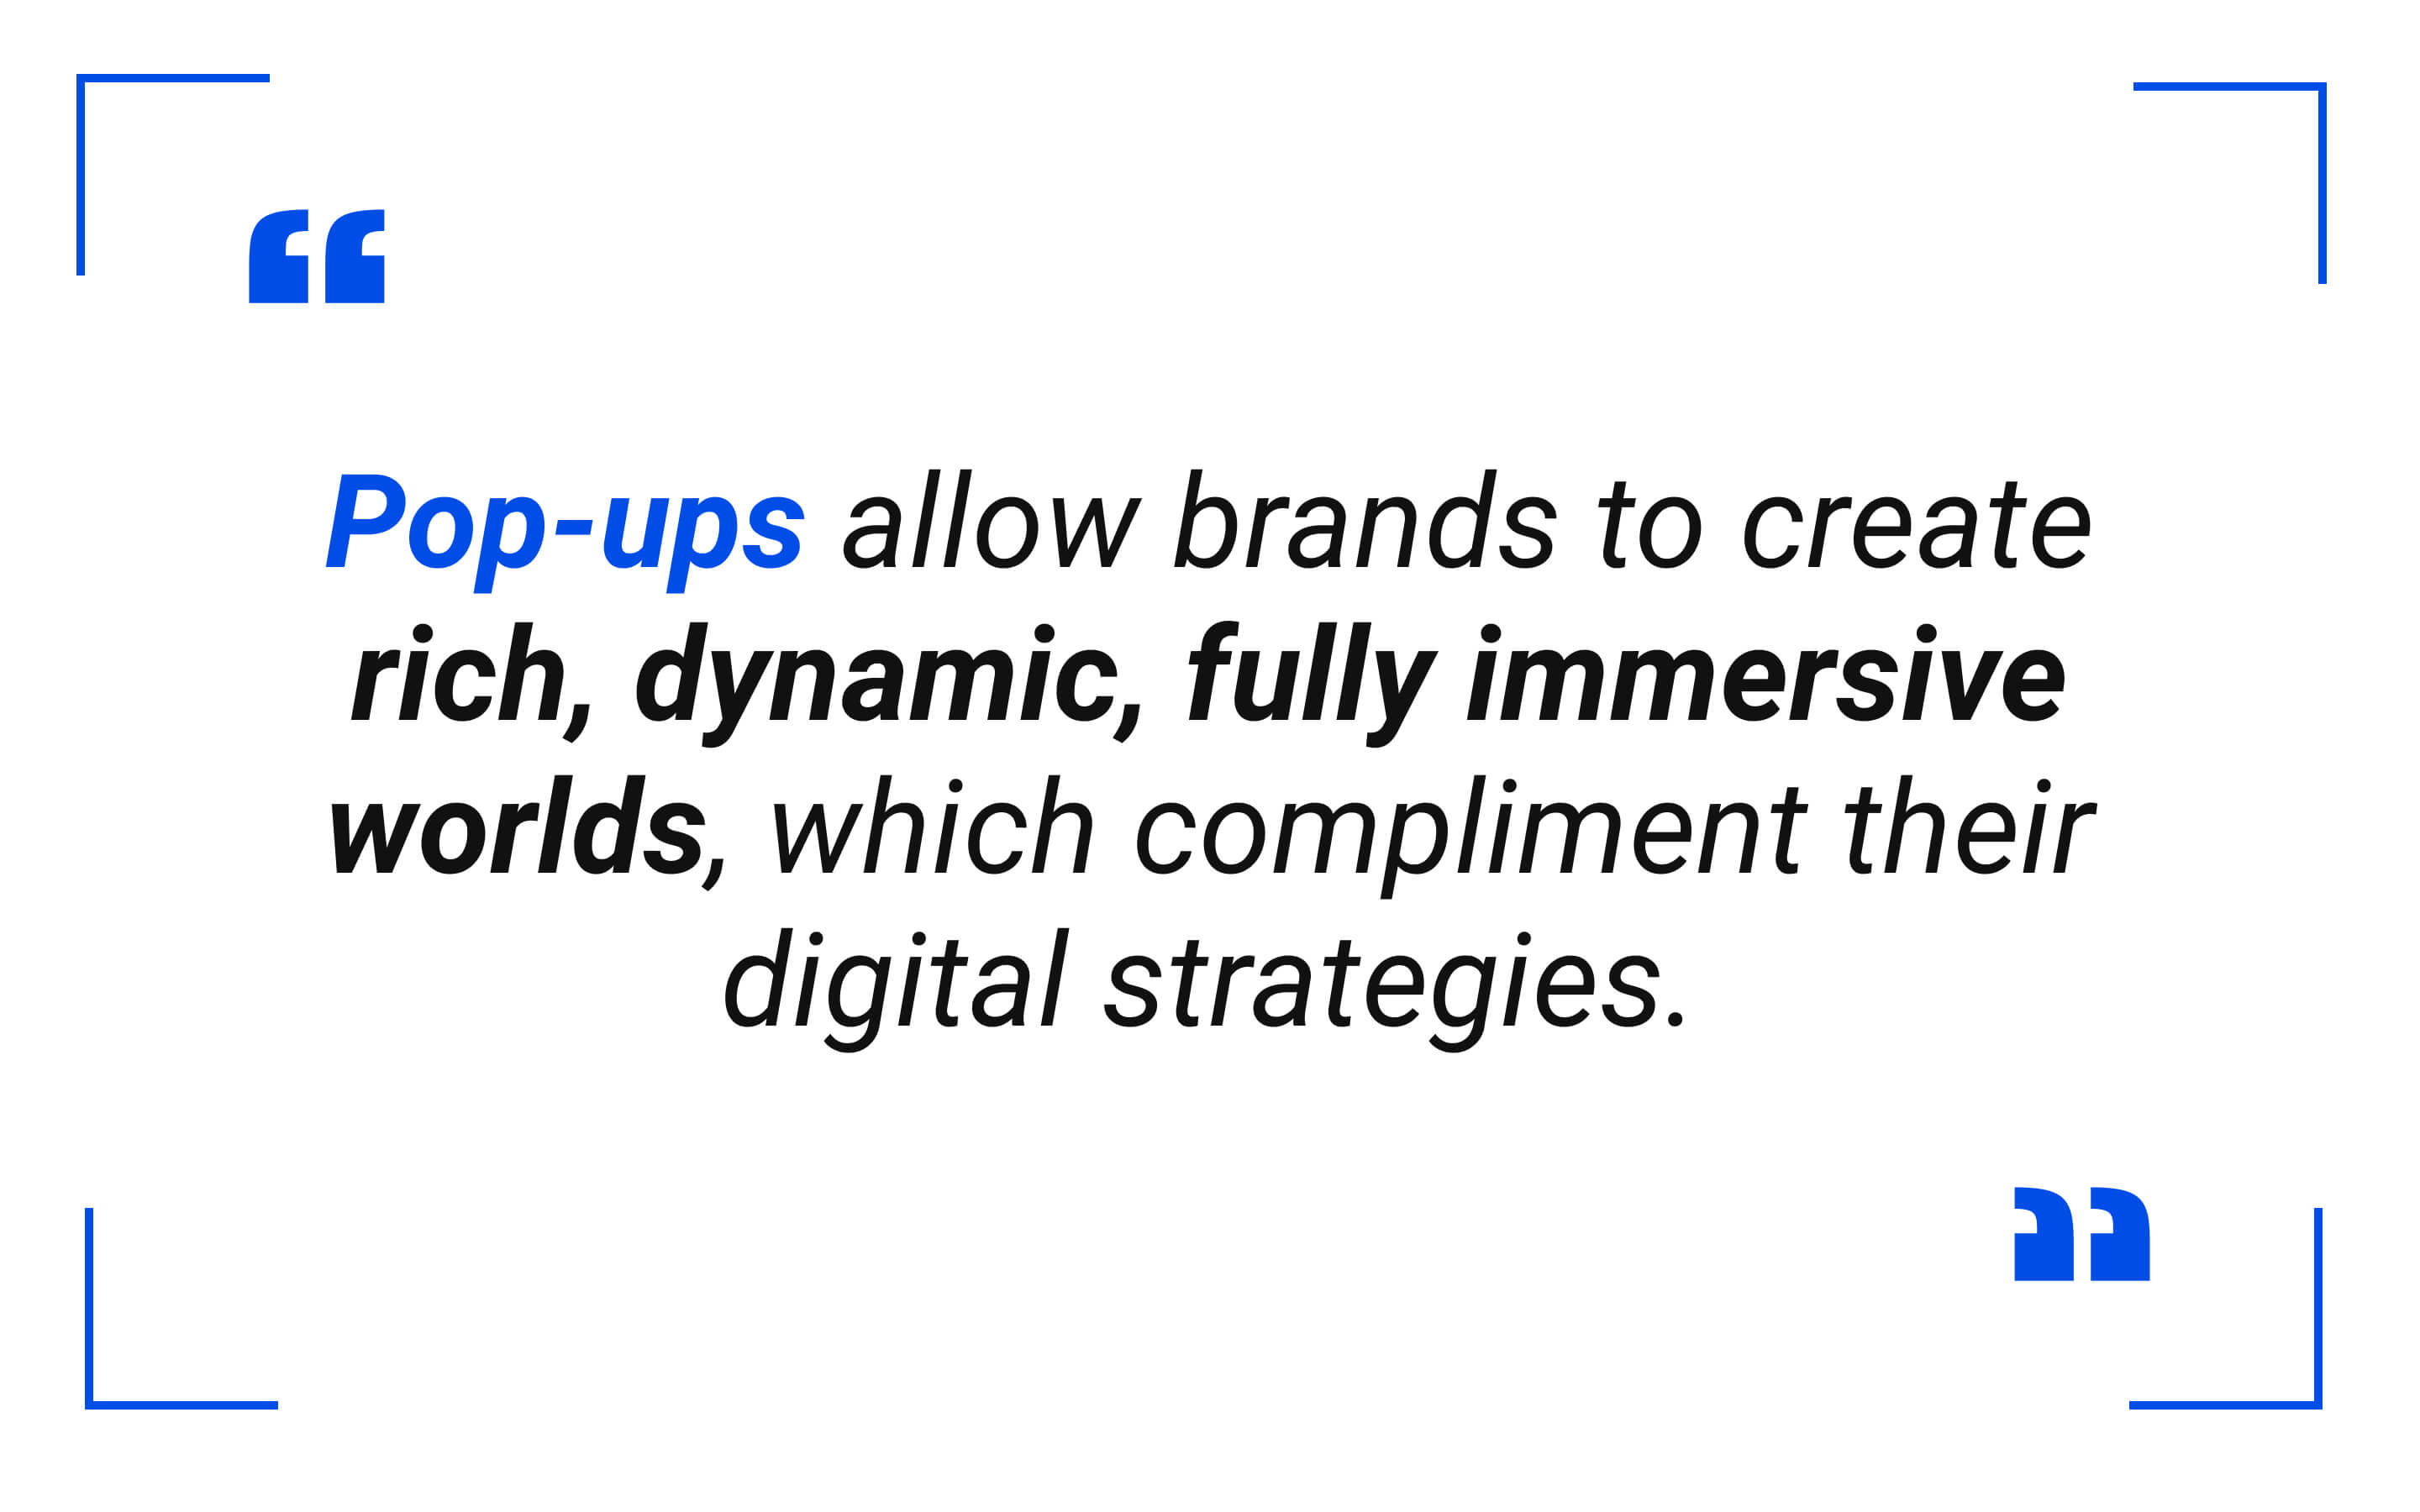 Pop-ups allow brands to create rich, dynamic, fully immersive worlds